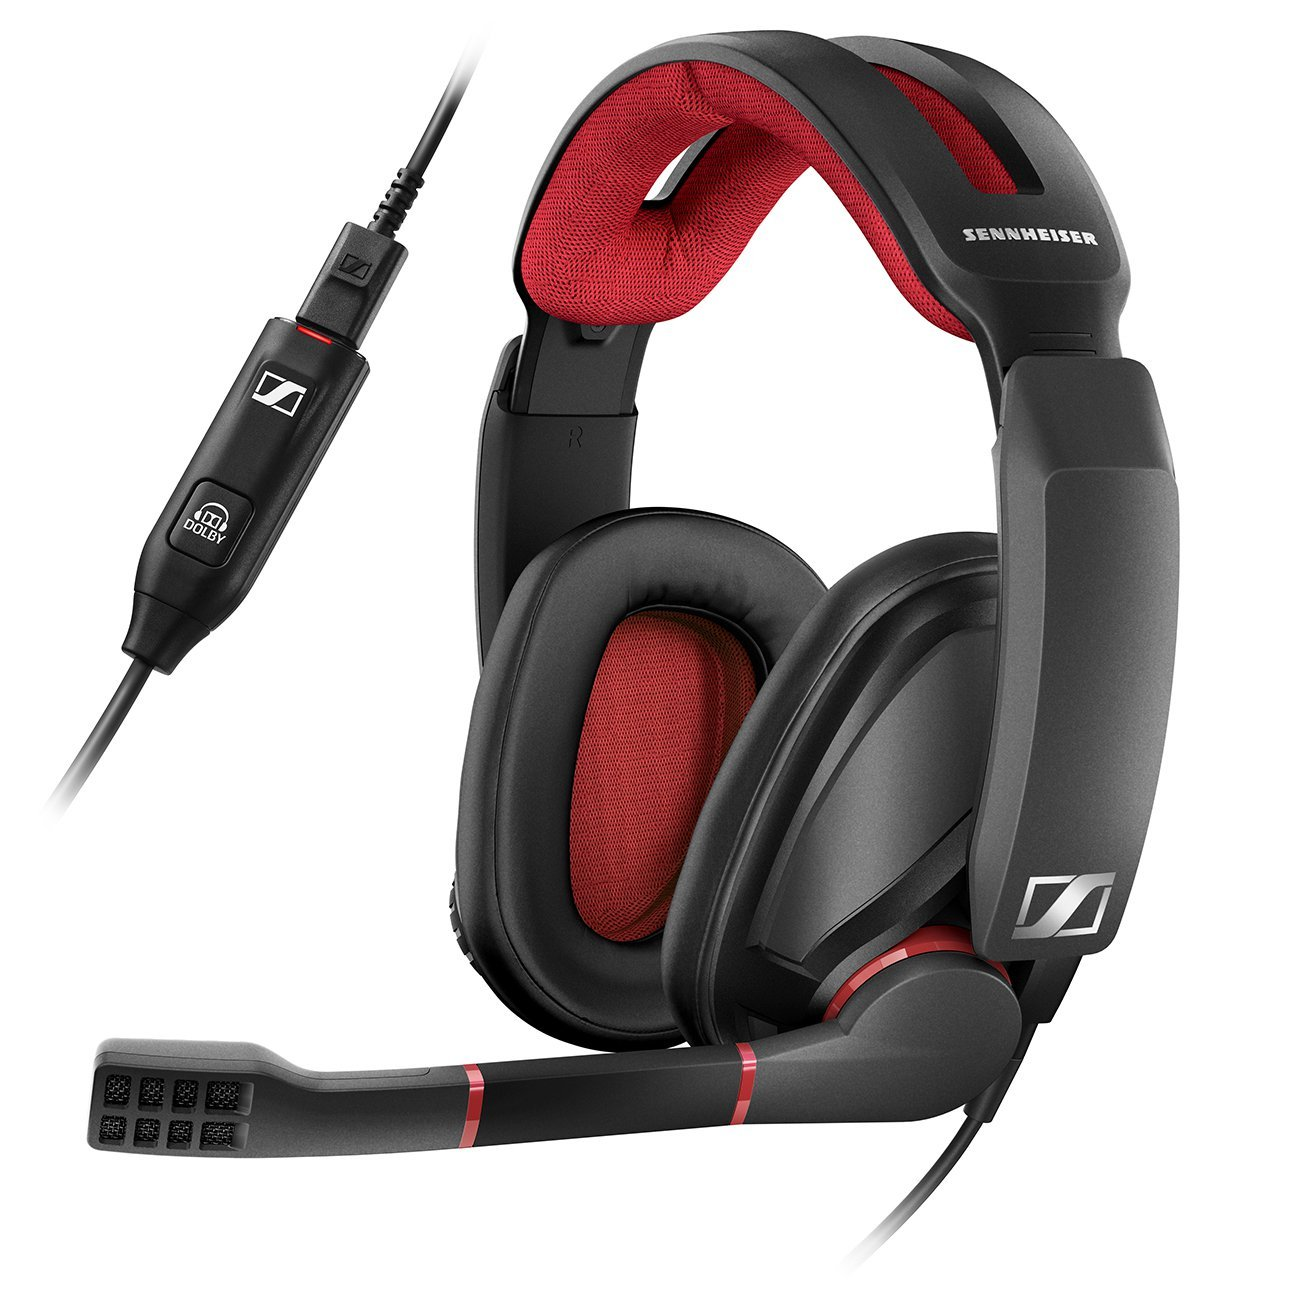 Closed Around Ear PC Gaming Headset